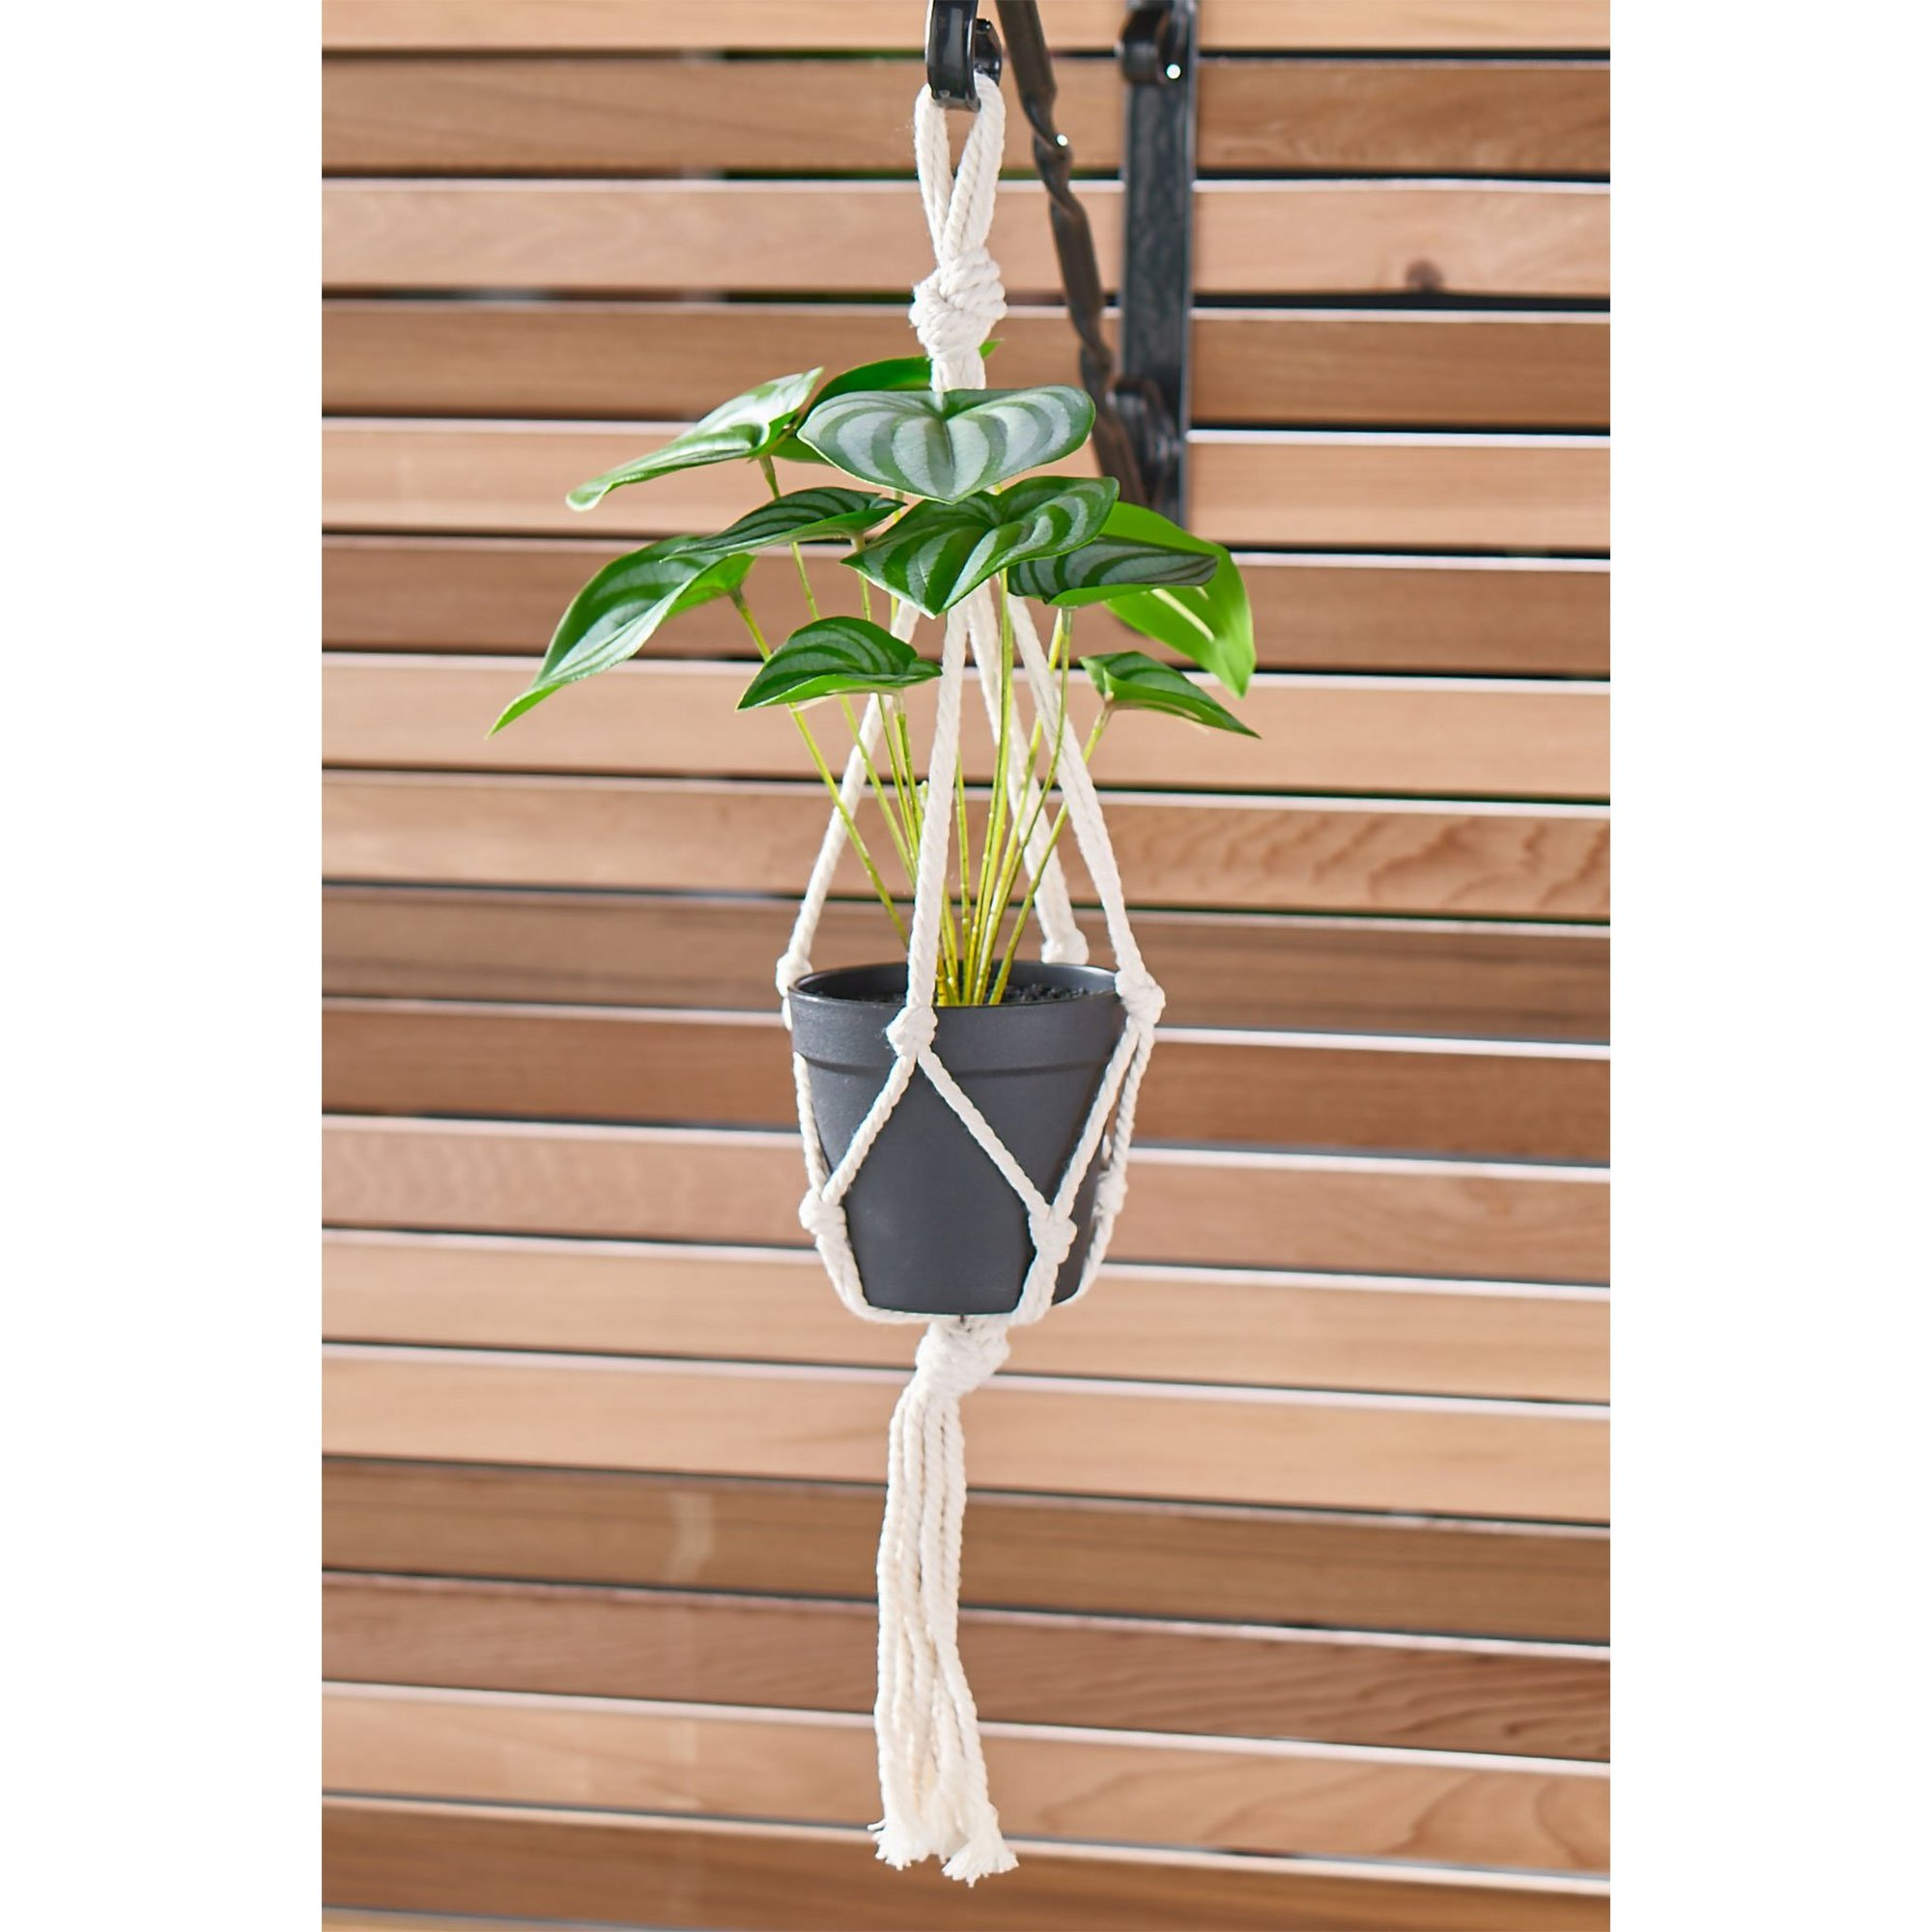 Image of Artificial Taro Leaves Hanging Pot Plant